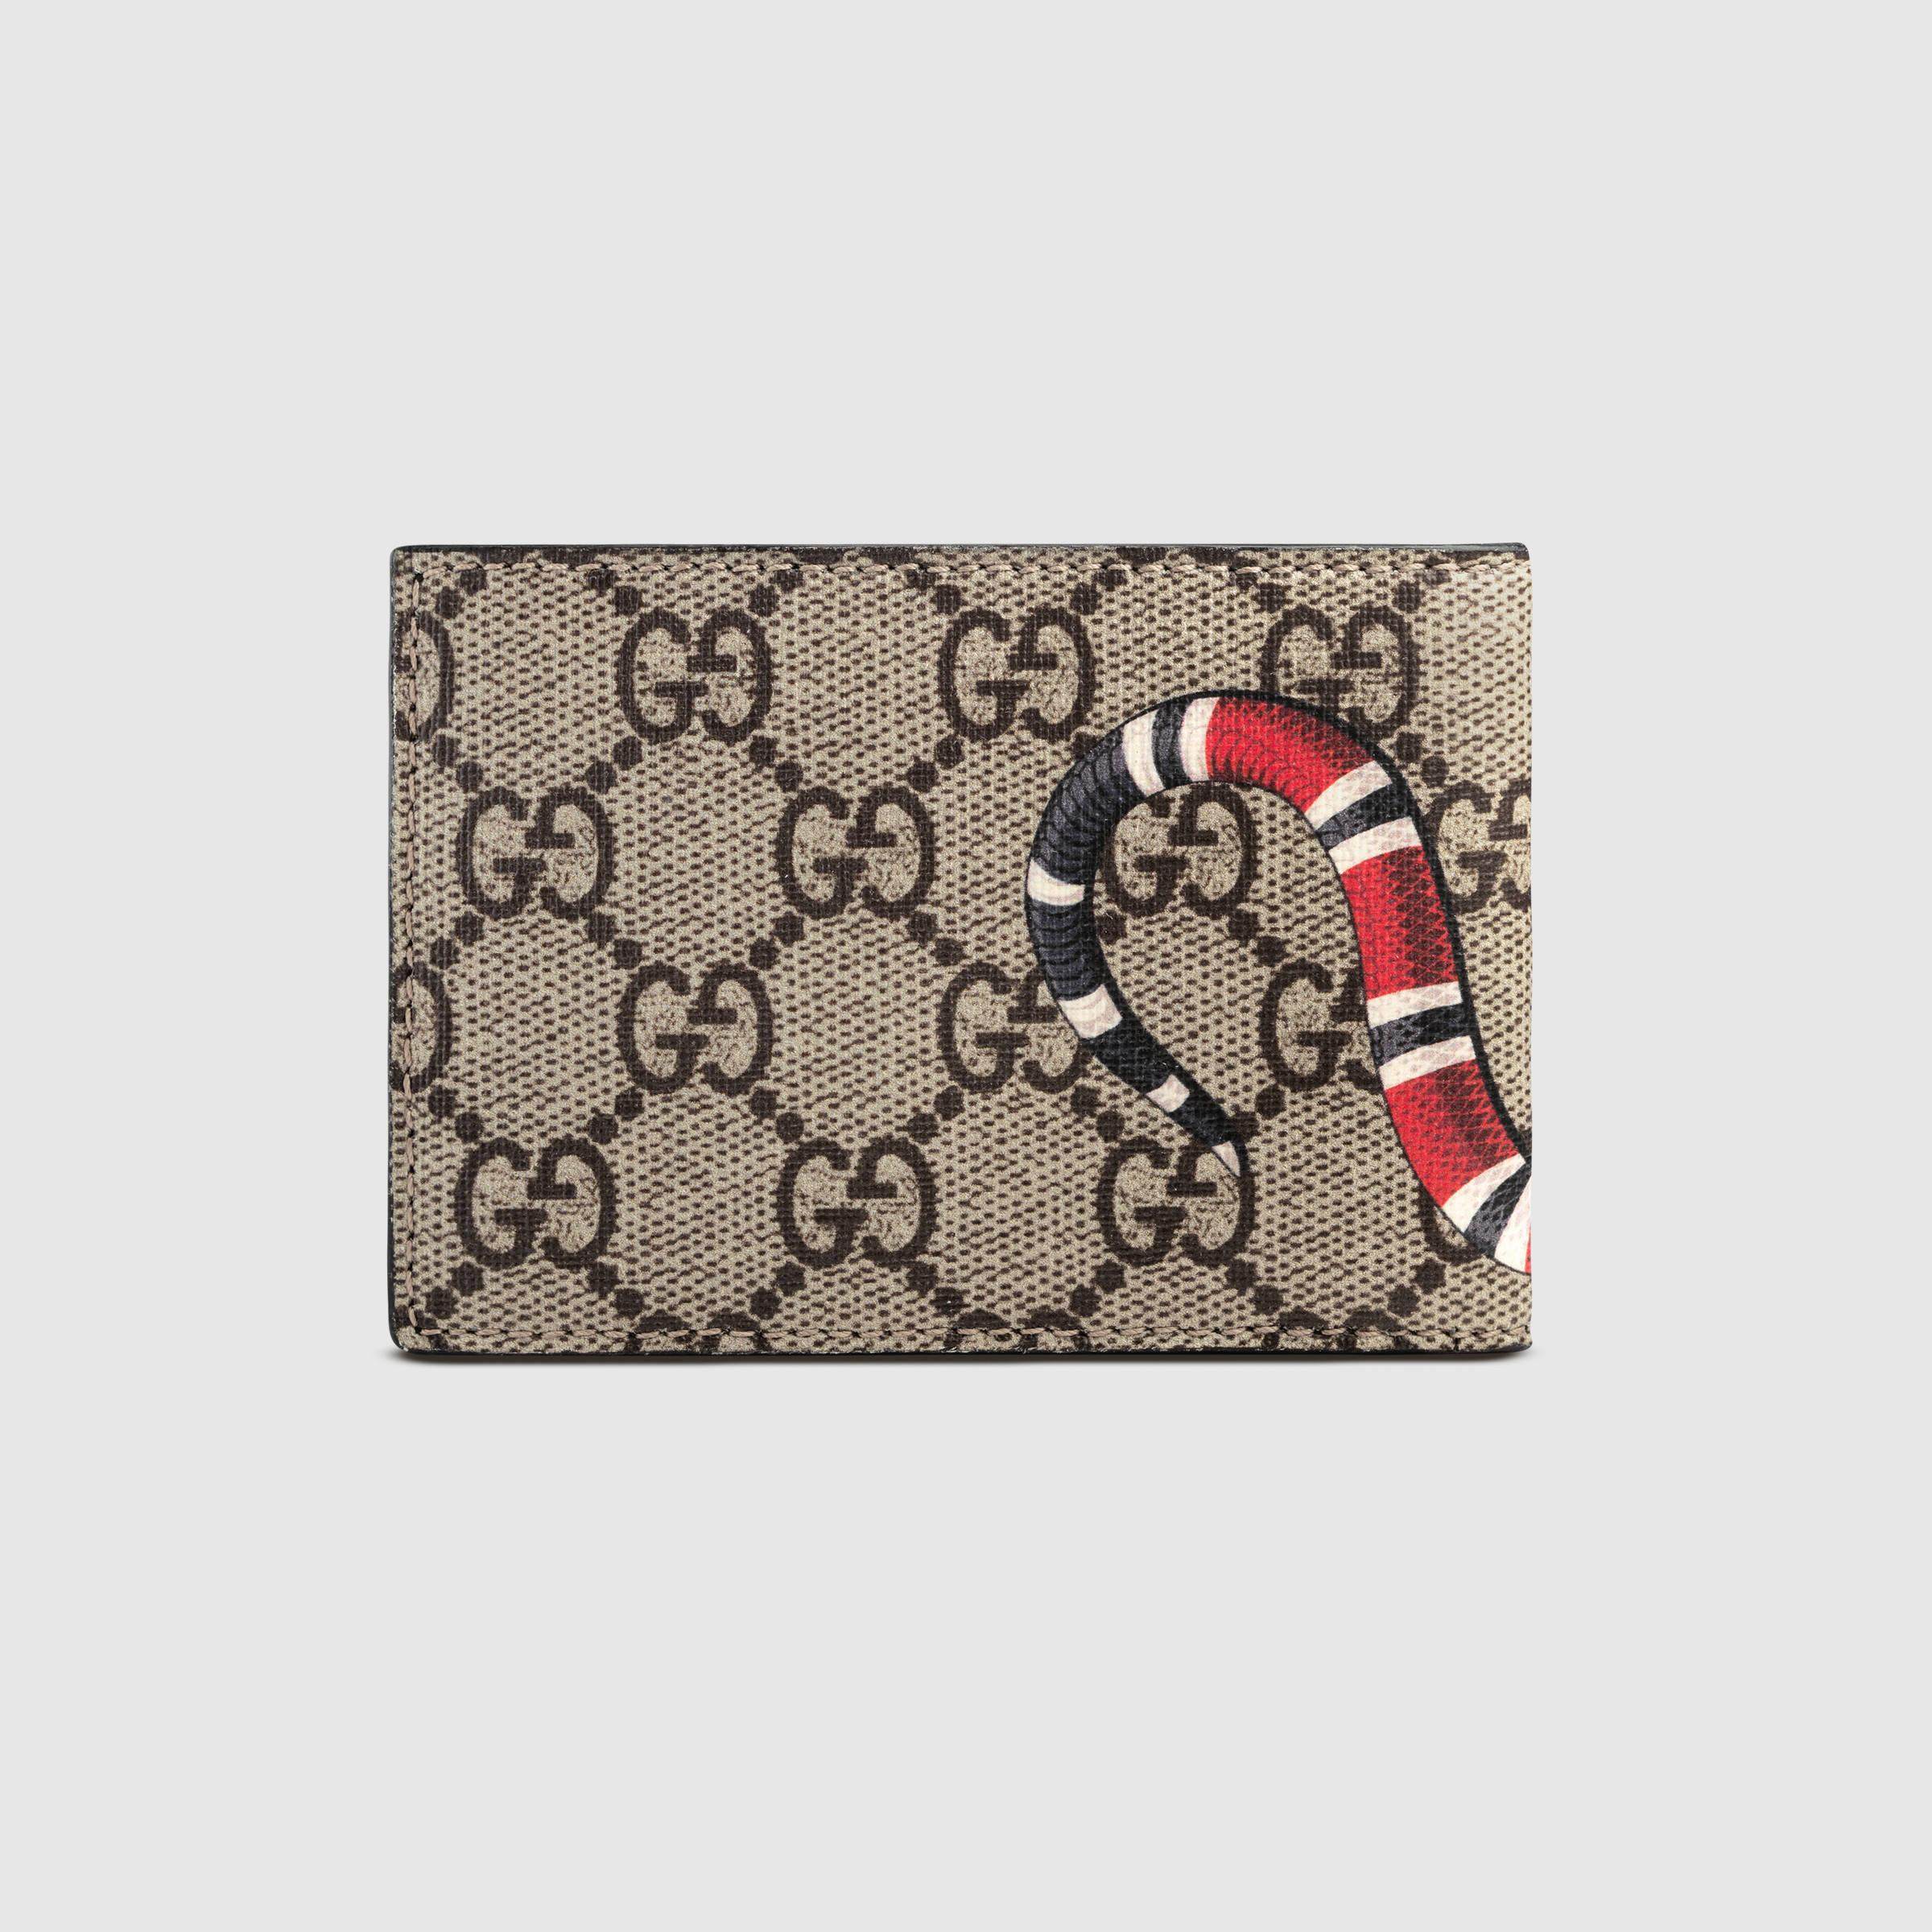 5eb9bbb4d268 Gucci Wallet Mens Snake | Stanford Center for Opportunity Policy in ...